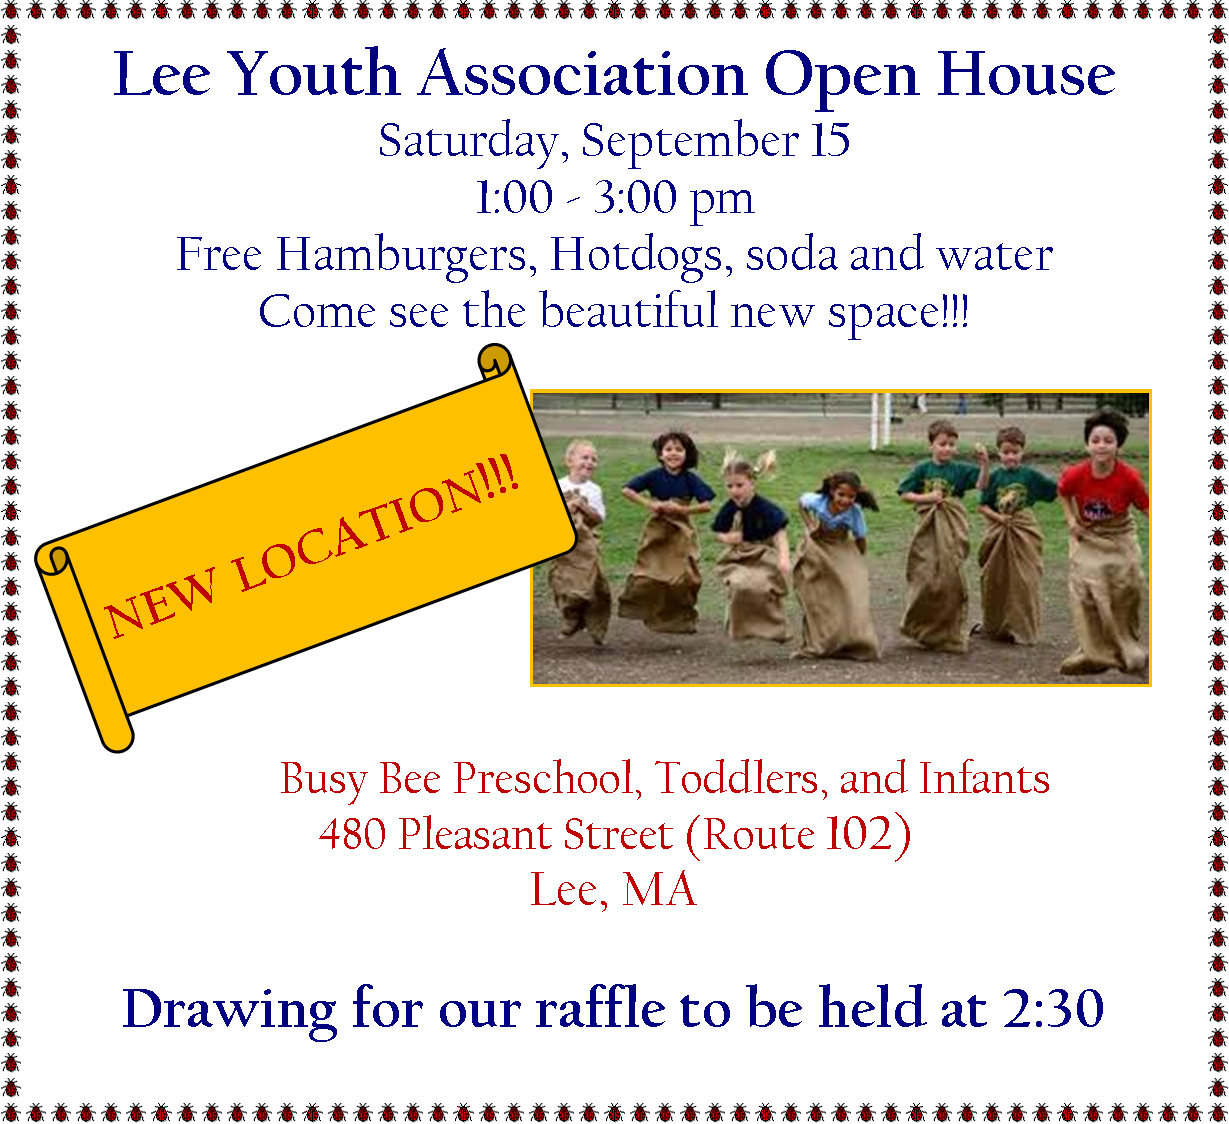 Lee Youth Association Open House